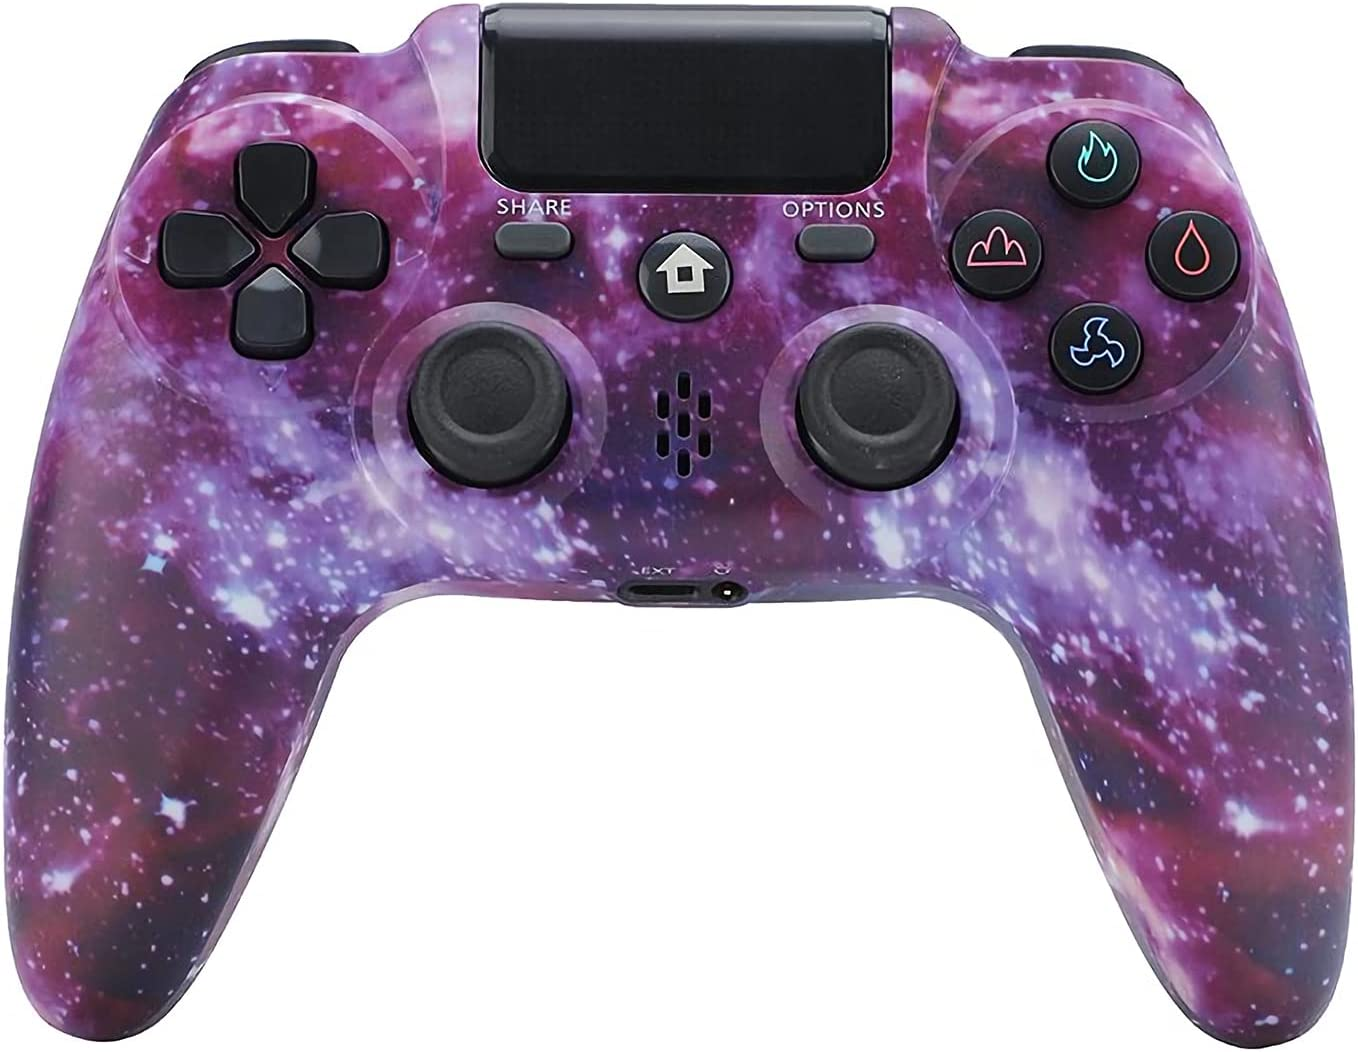 Oklahoma City Mall Wireless PS4 Controller Vinklan 2021 Upgraded Game All items in the store Design Contr